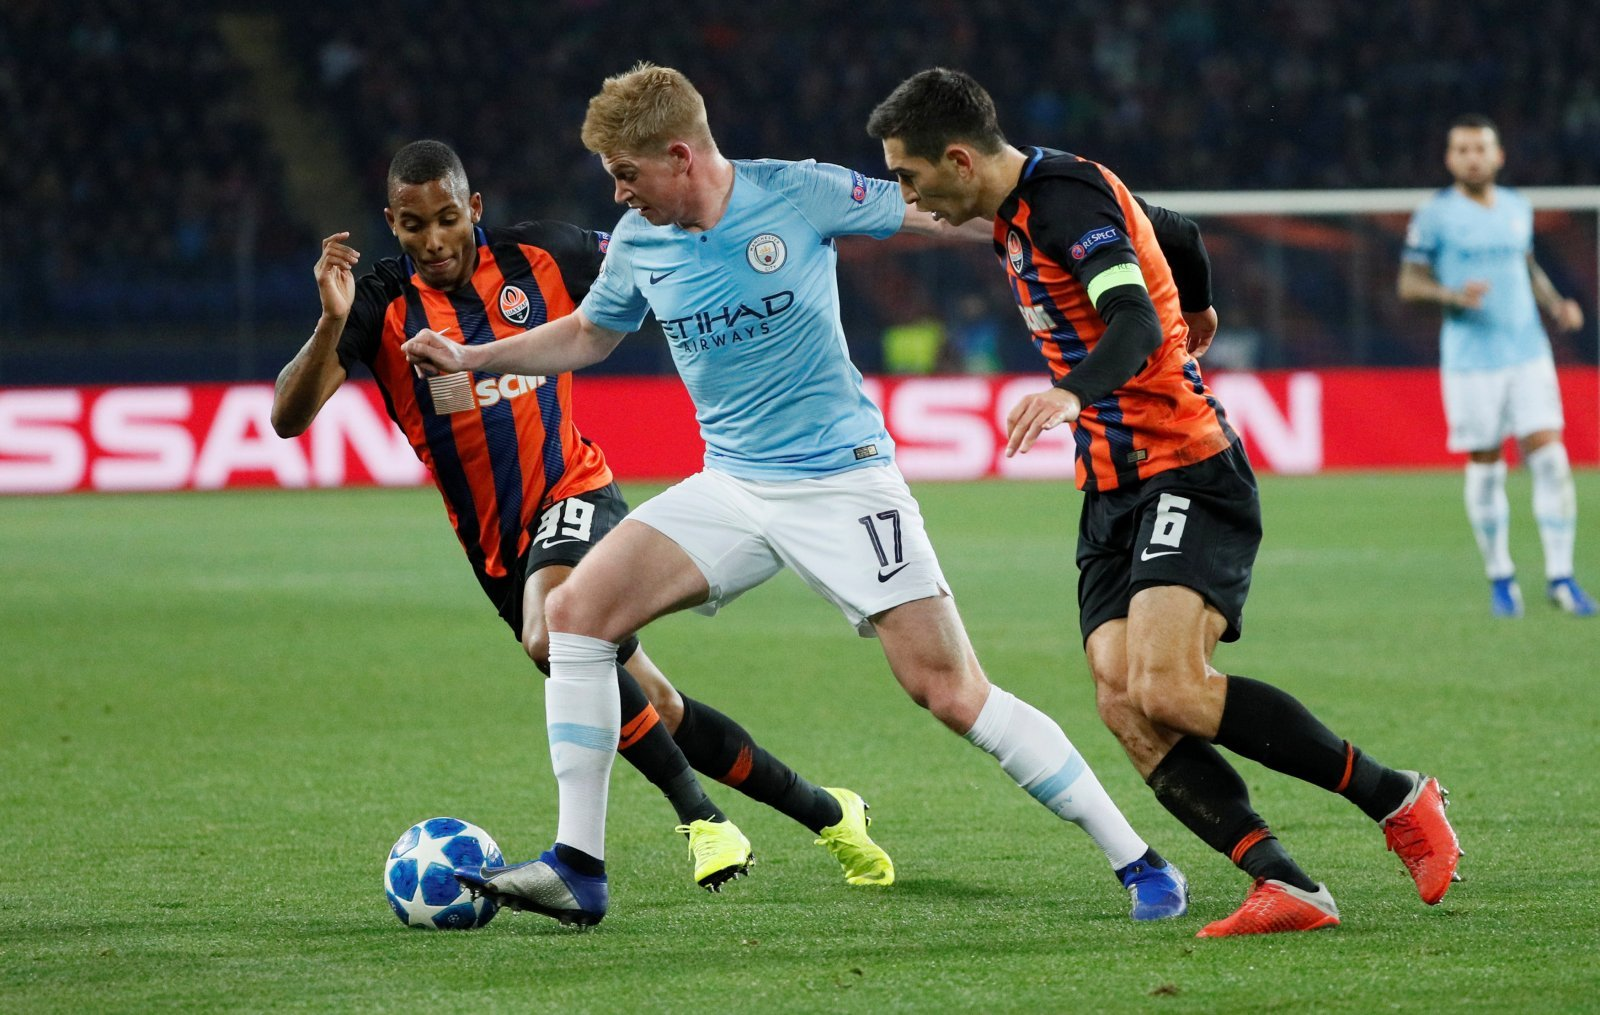 Garth Crooks: With De Bruyne fit and playing well again, anything is possible